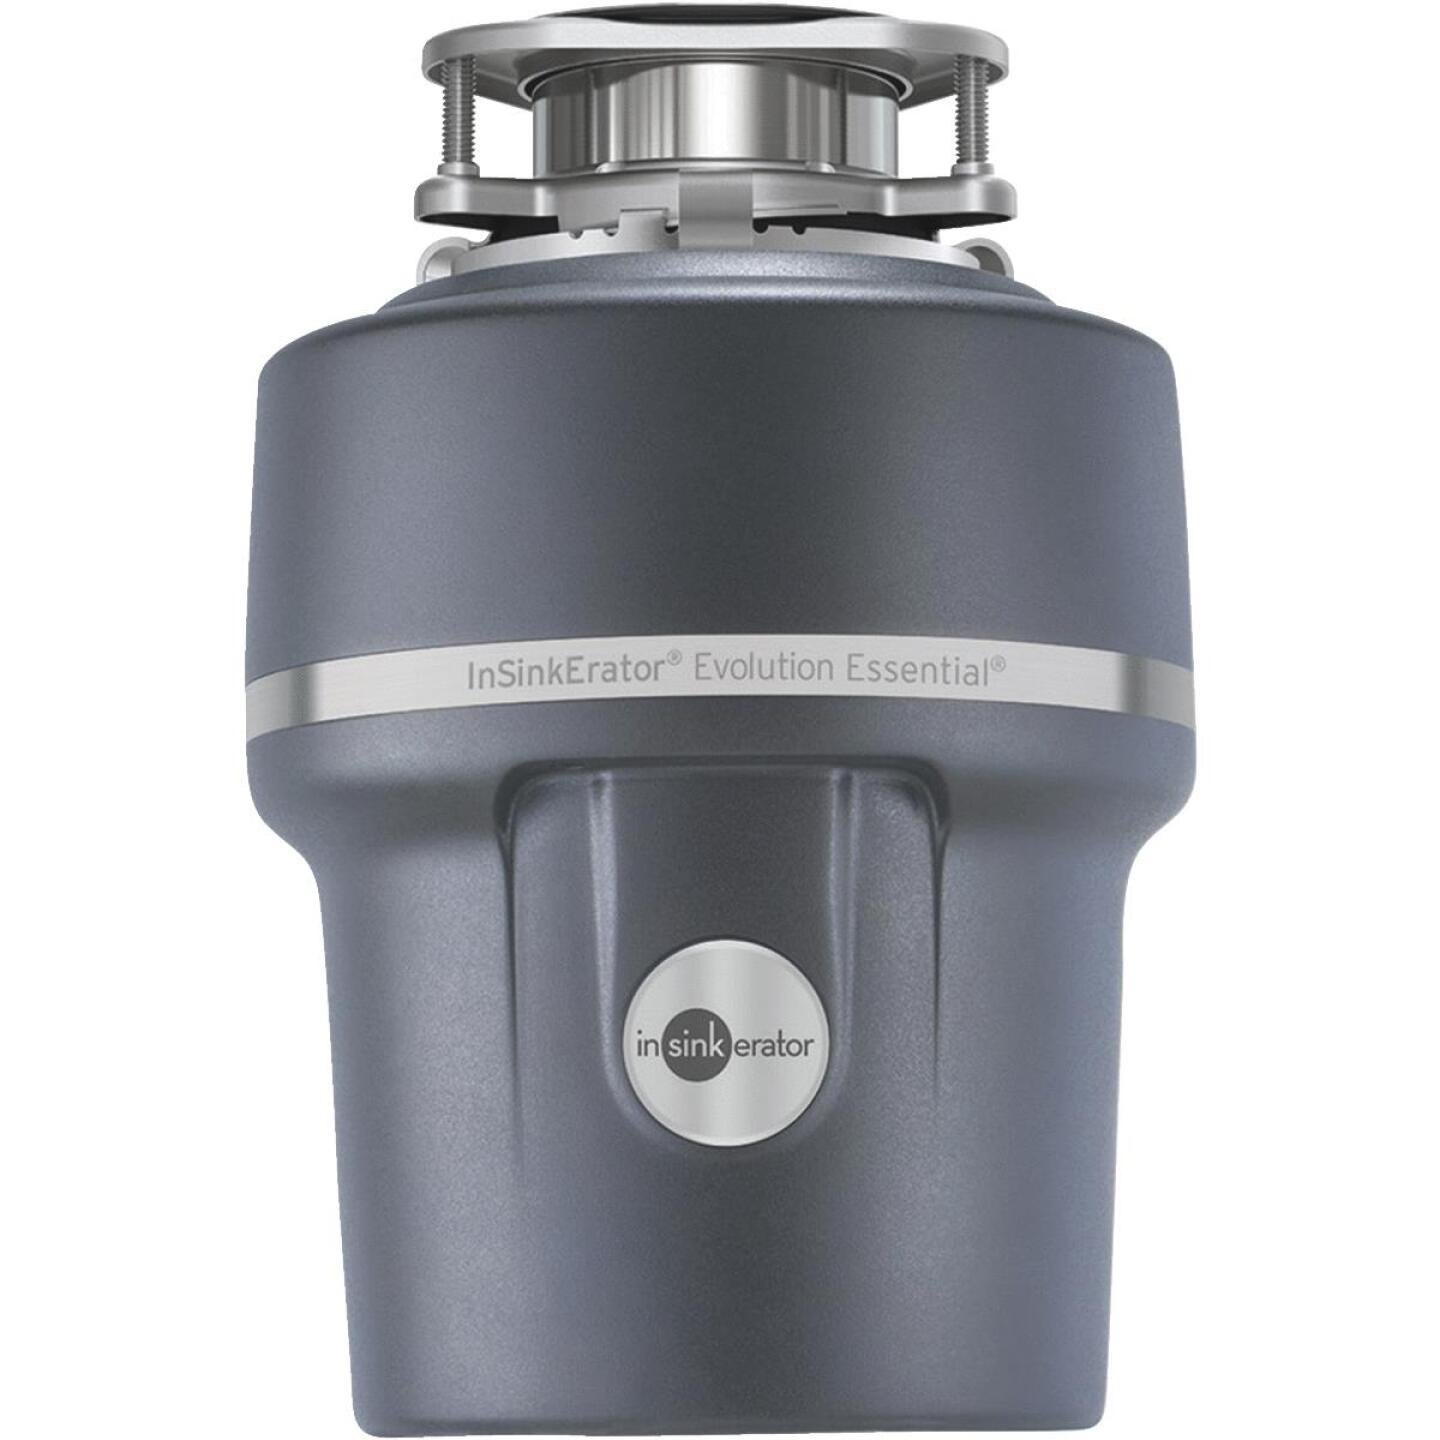 Insinkerator Evolution Essential 3/4 HP Garbage Disposal, 9 Year Warranty Image 3